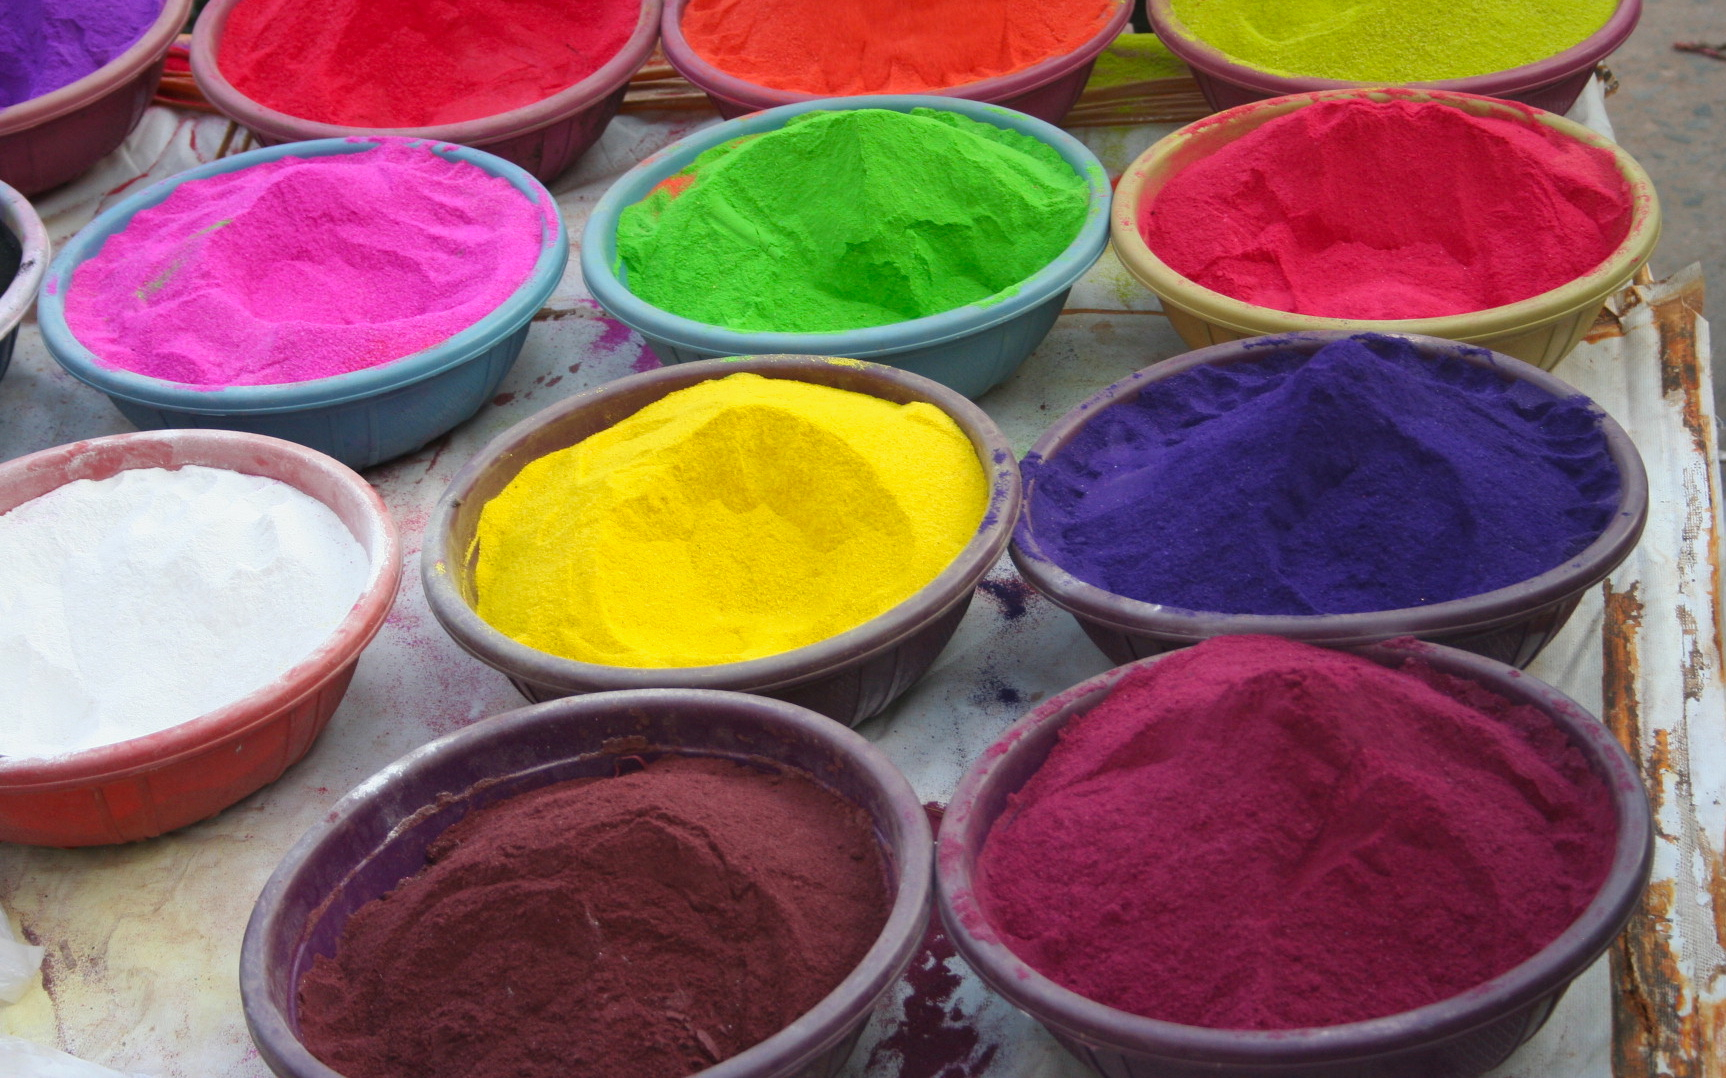 Food coloring online india - Food Coloring Online India